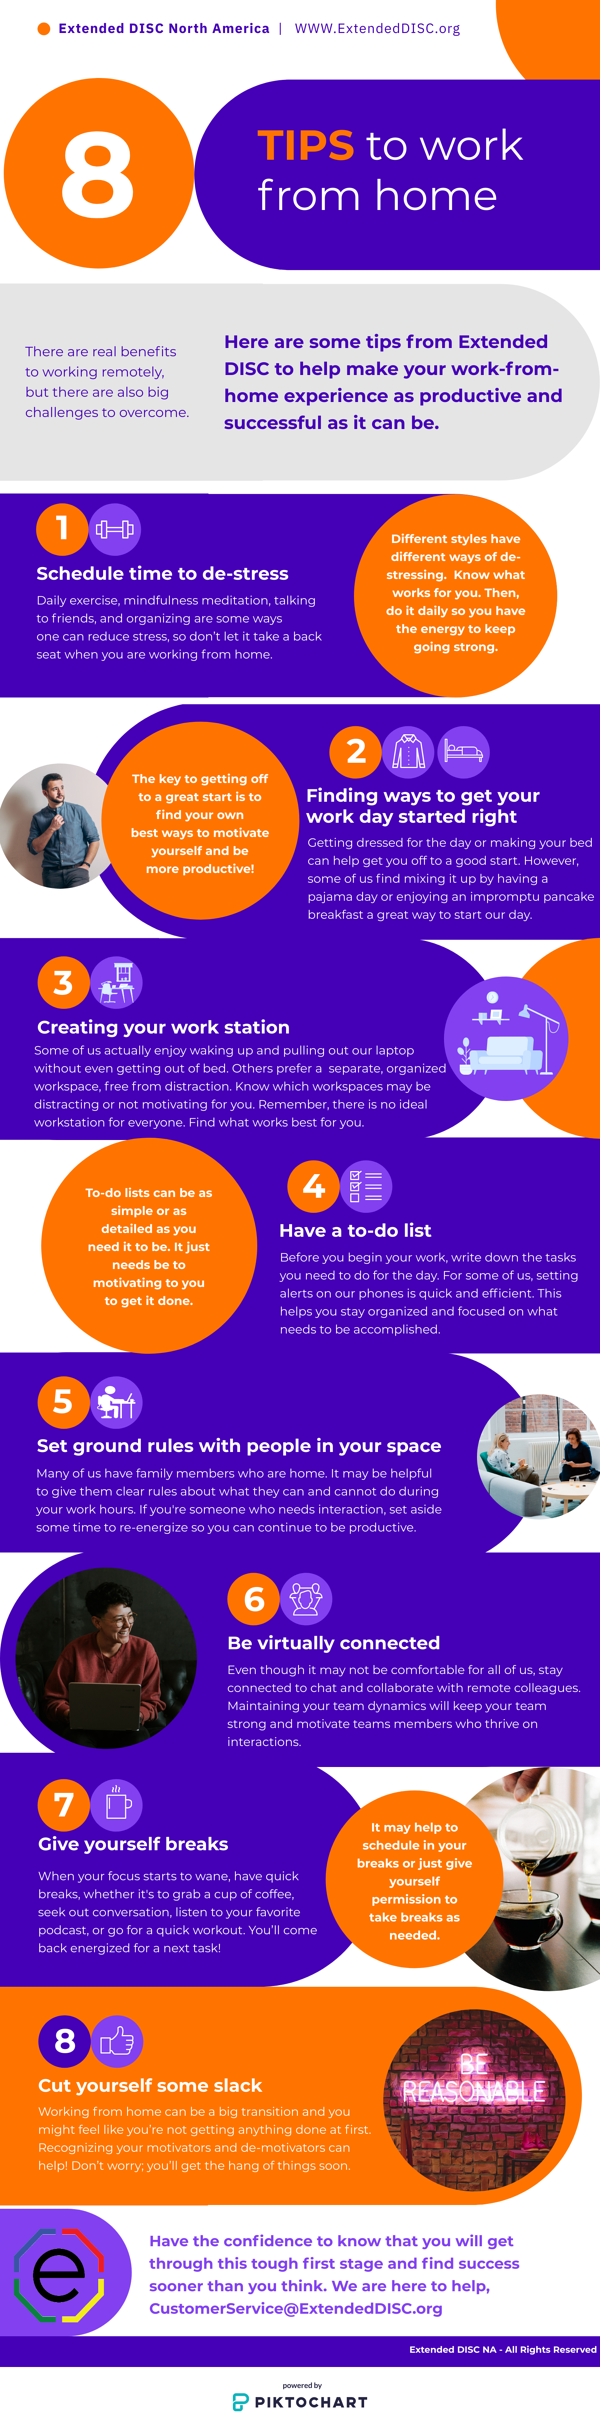 Tips for Working From Home Infographic[1]